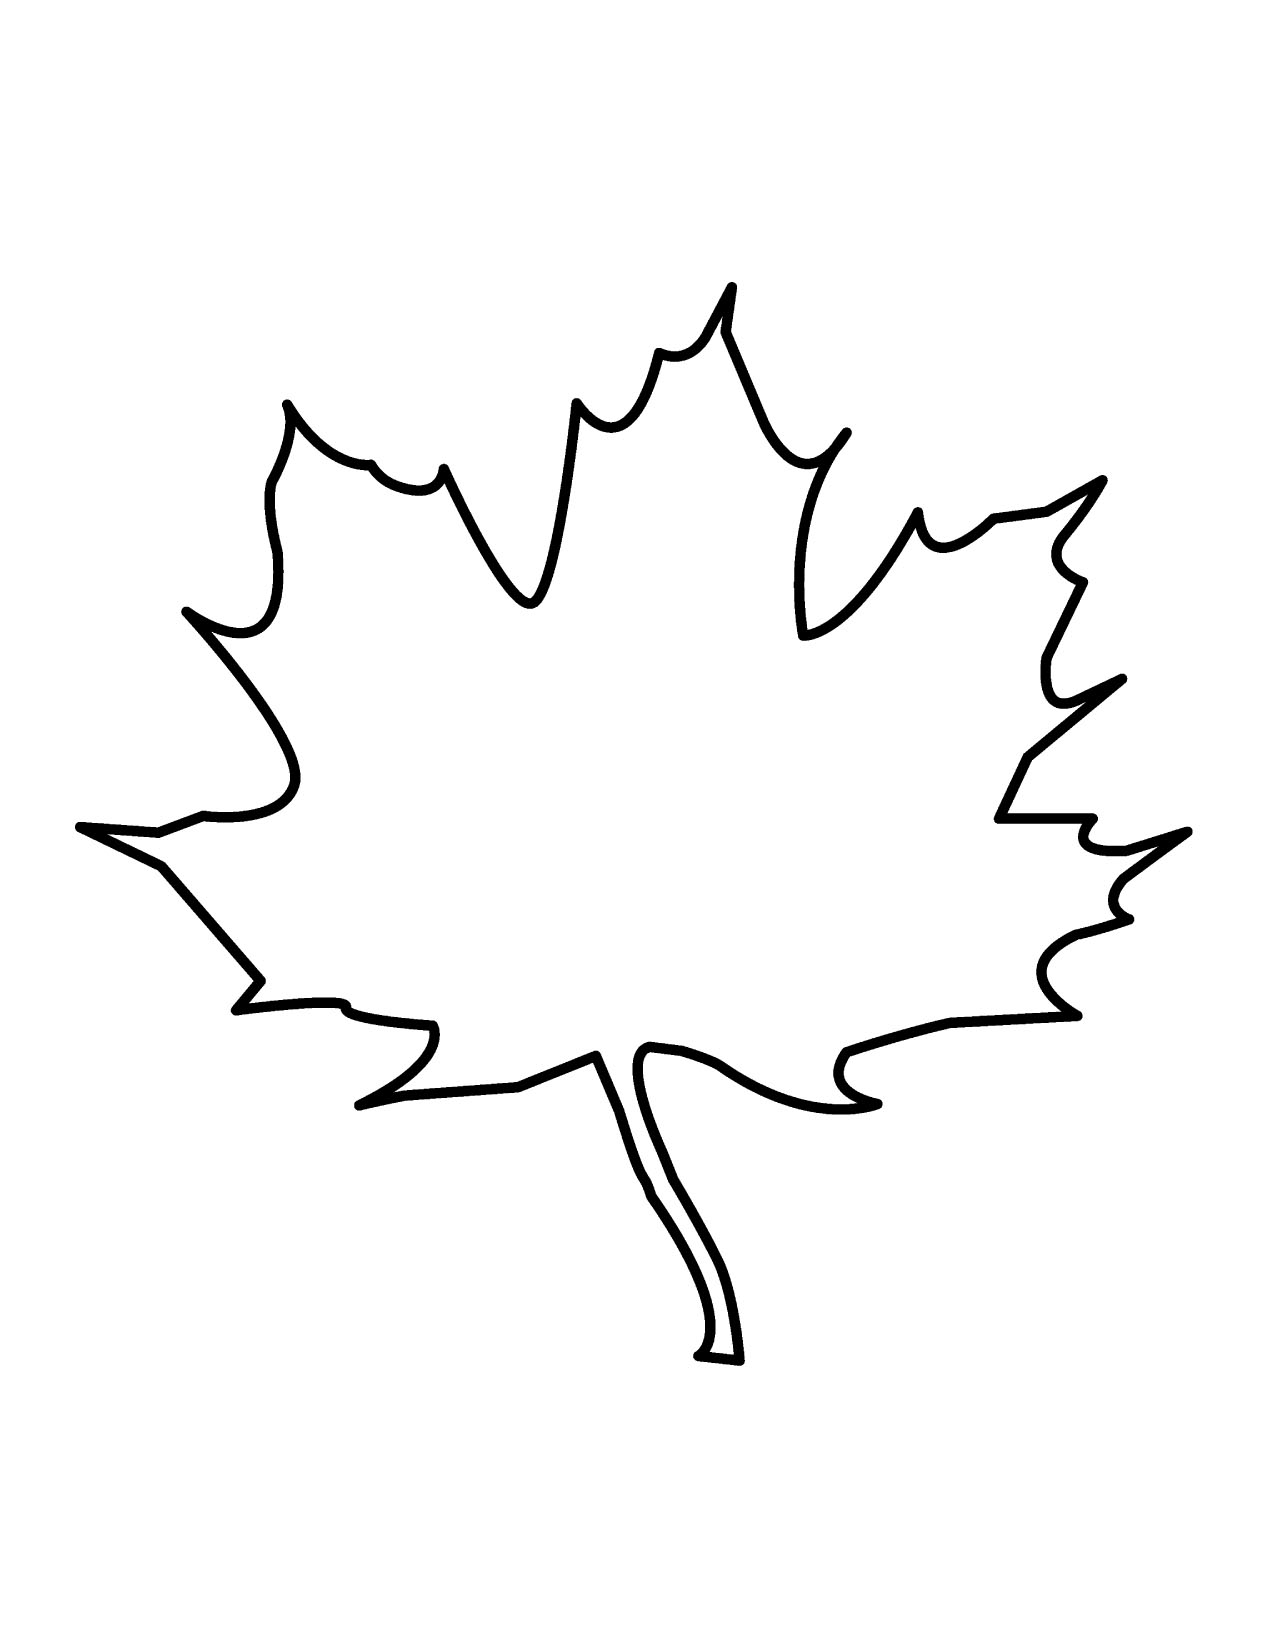 Leaf Outline Clip Art Black And White Clipart Best